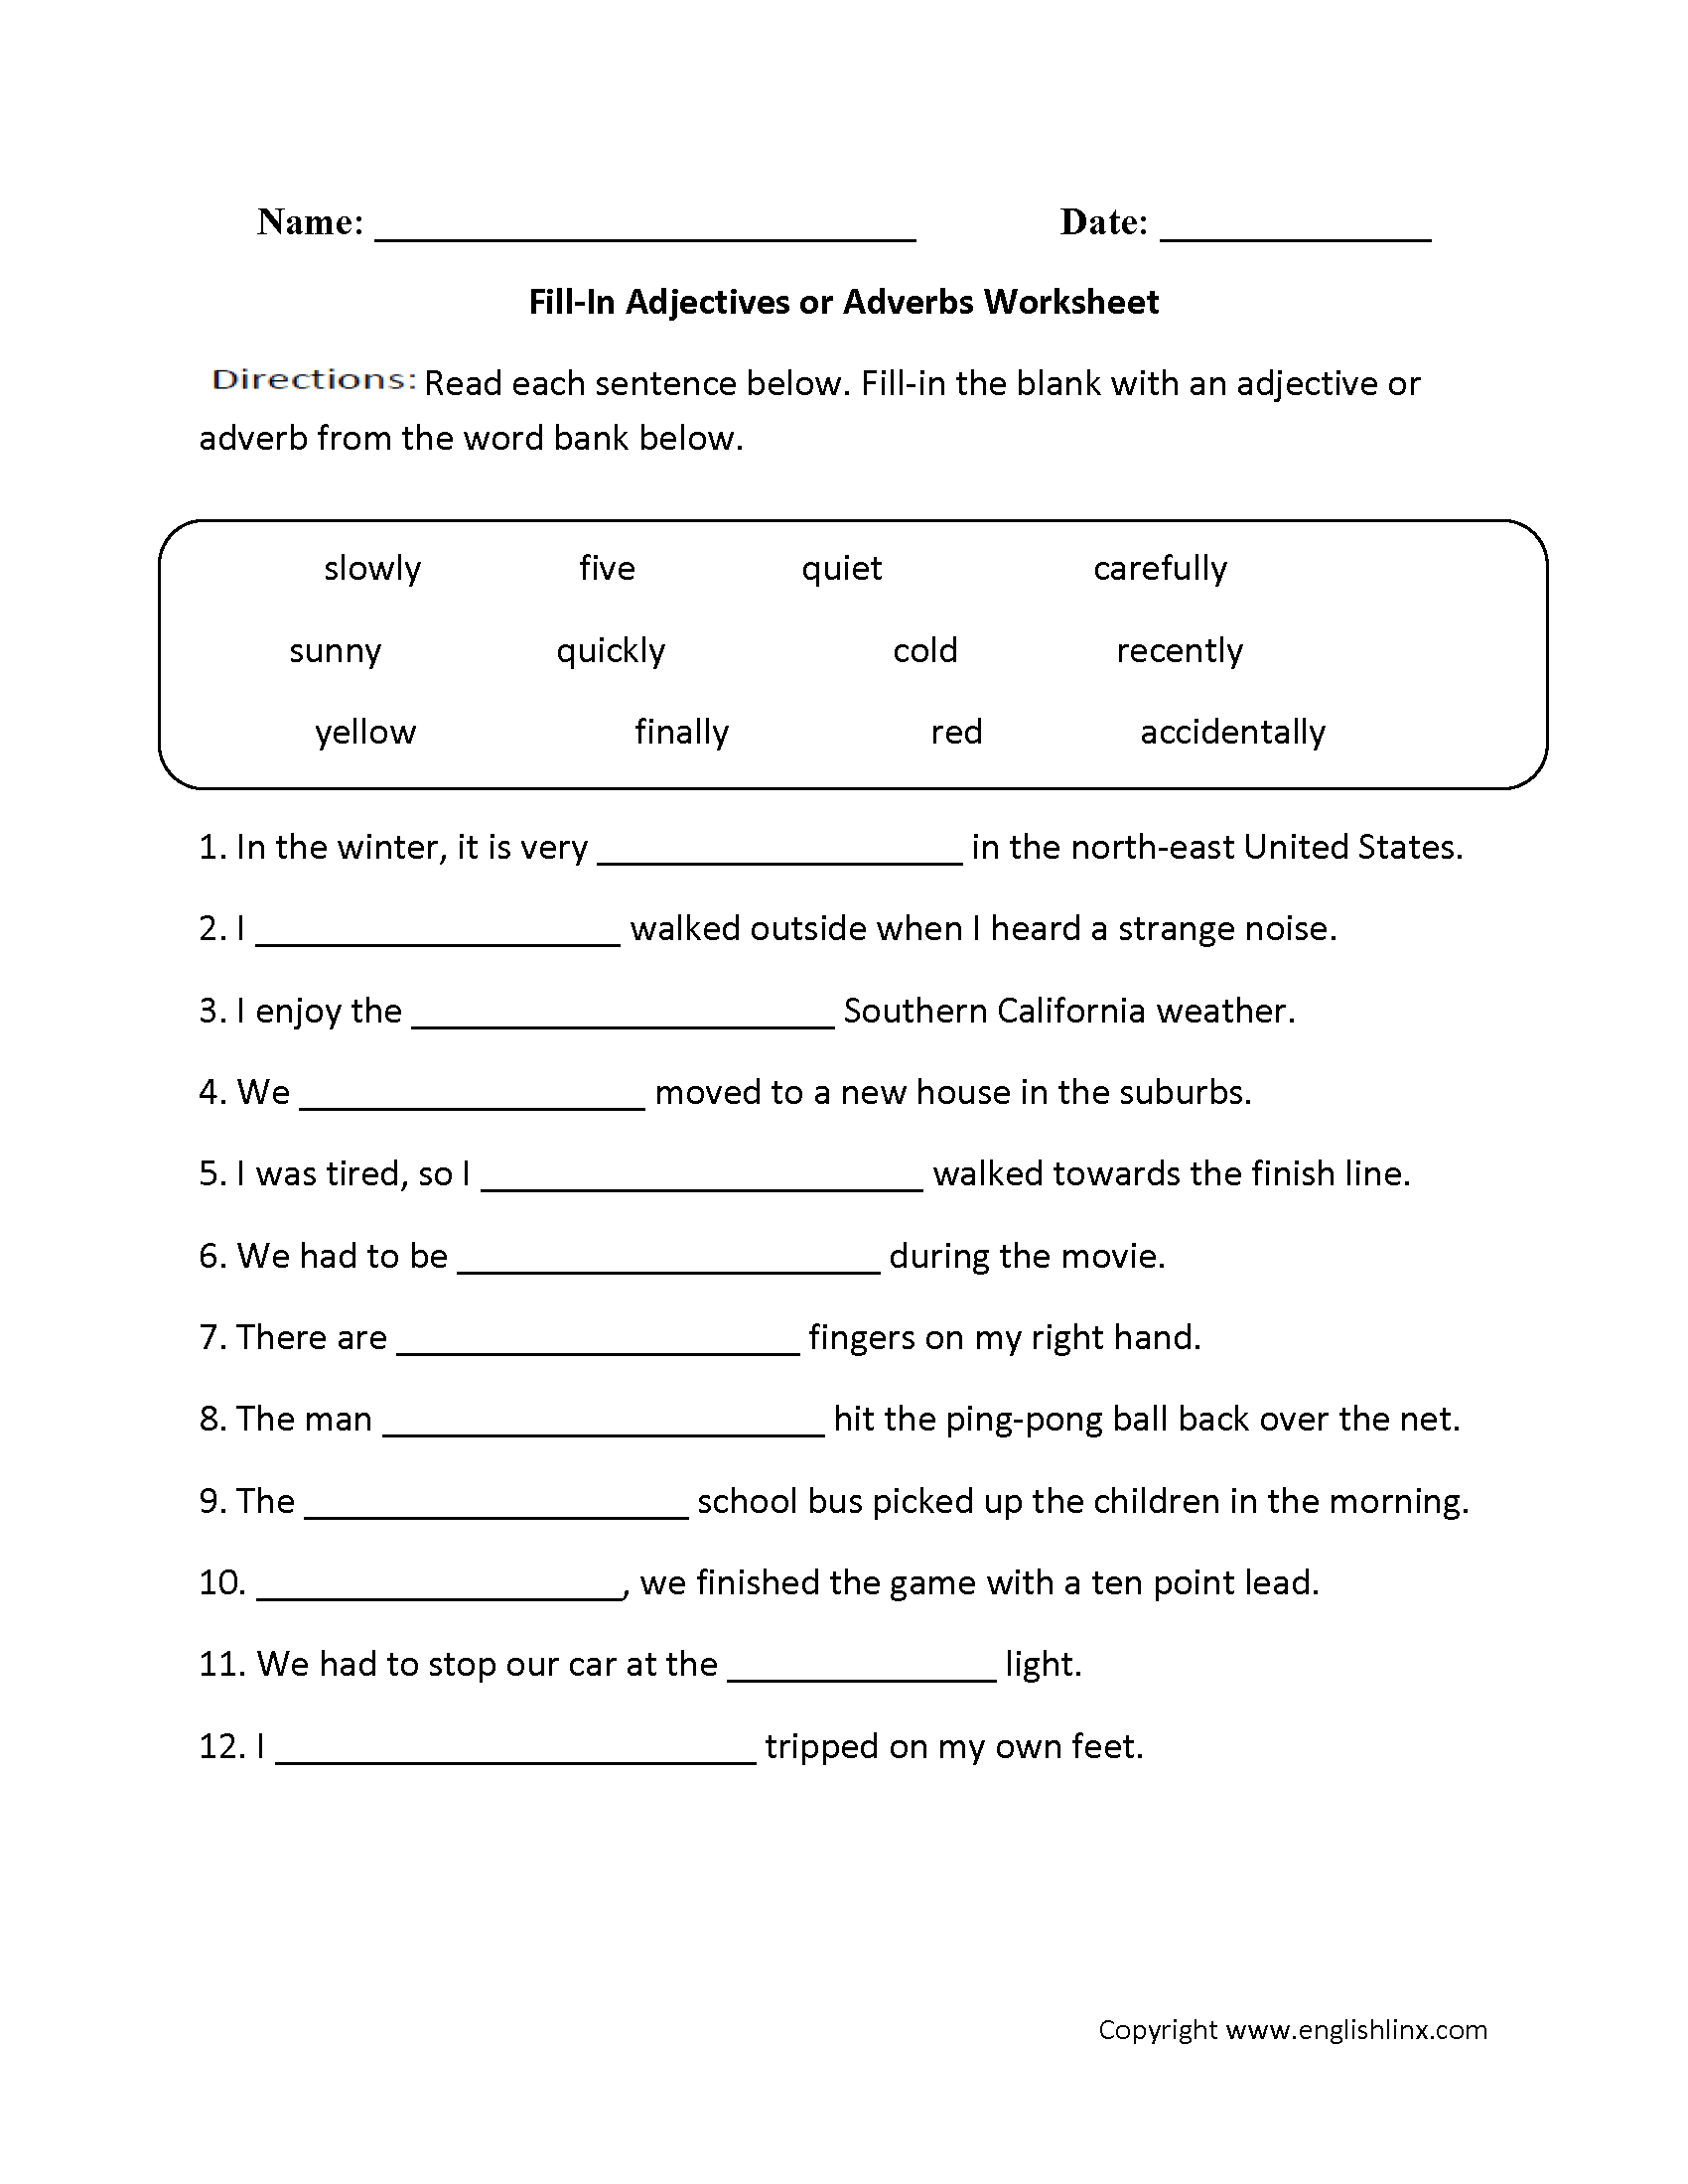 Adjectives Worksheets  Adjectives Or Adverbs Worksheets Regarding Adjective And Adverb Worksheets With Answer Key